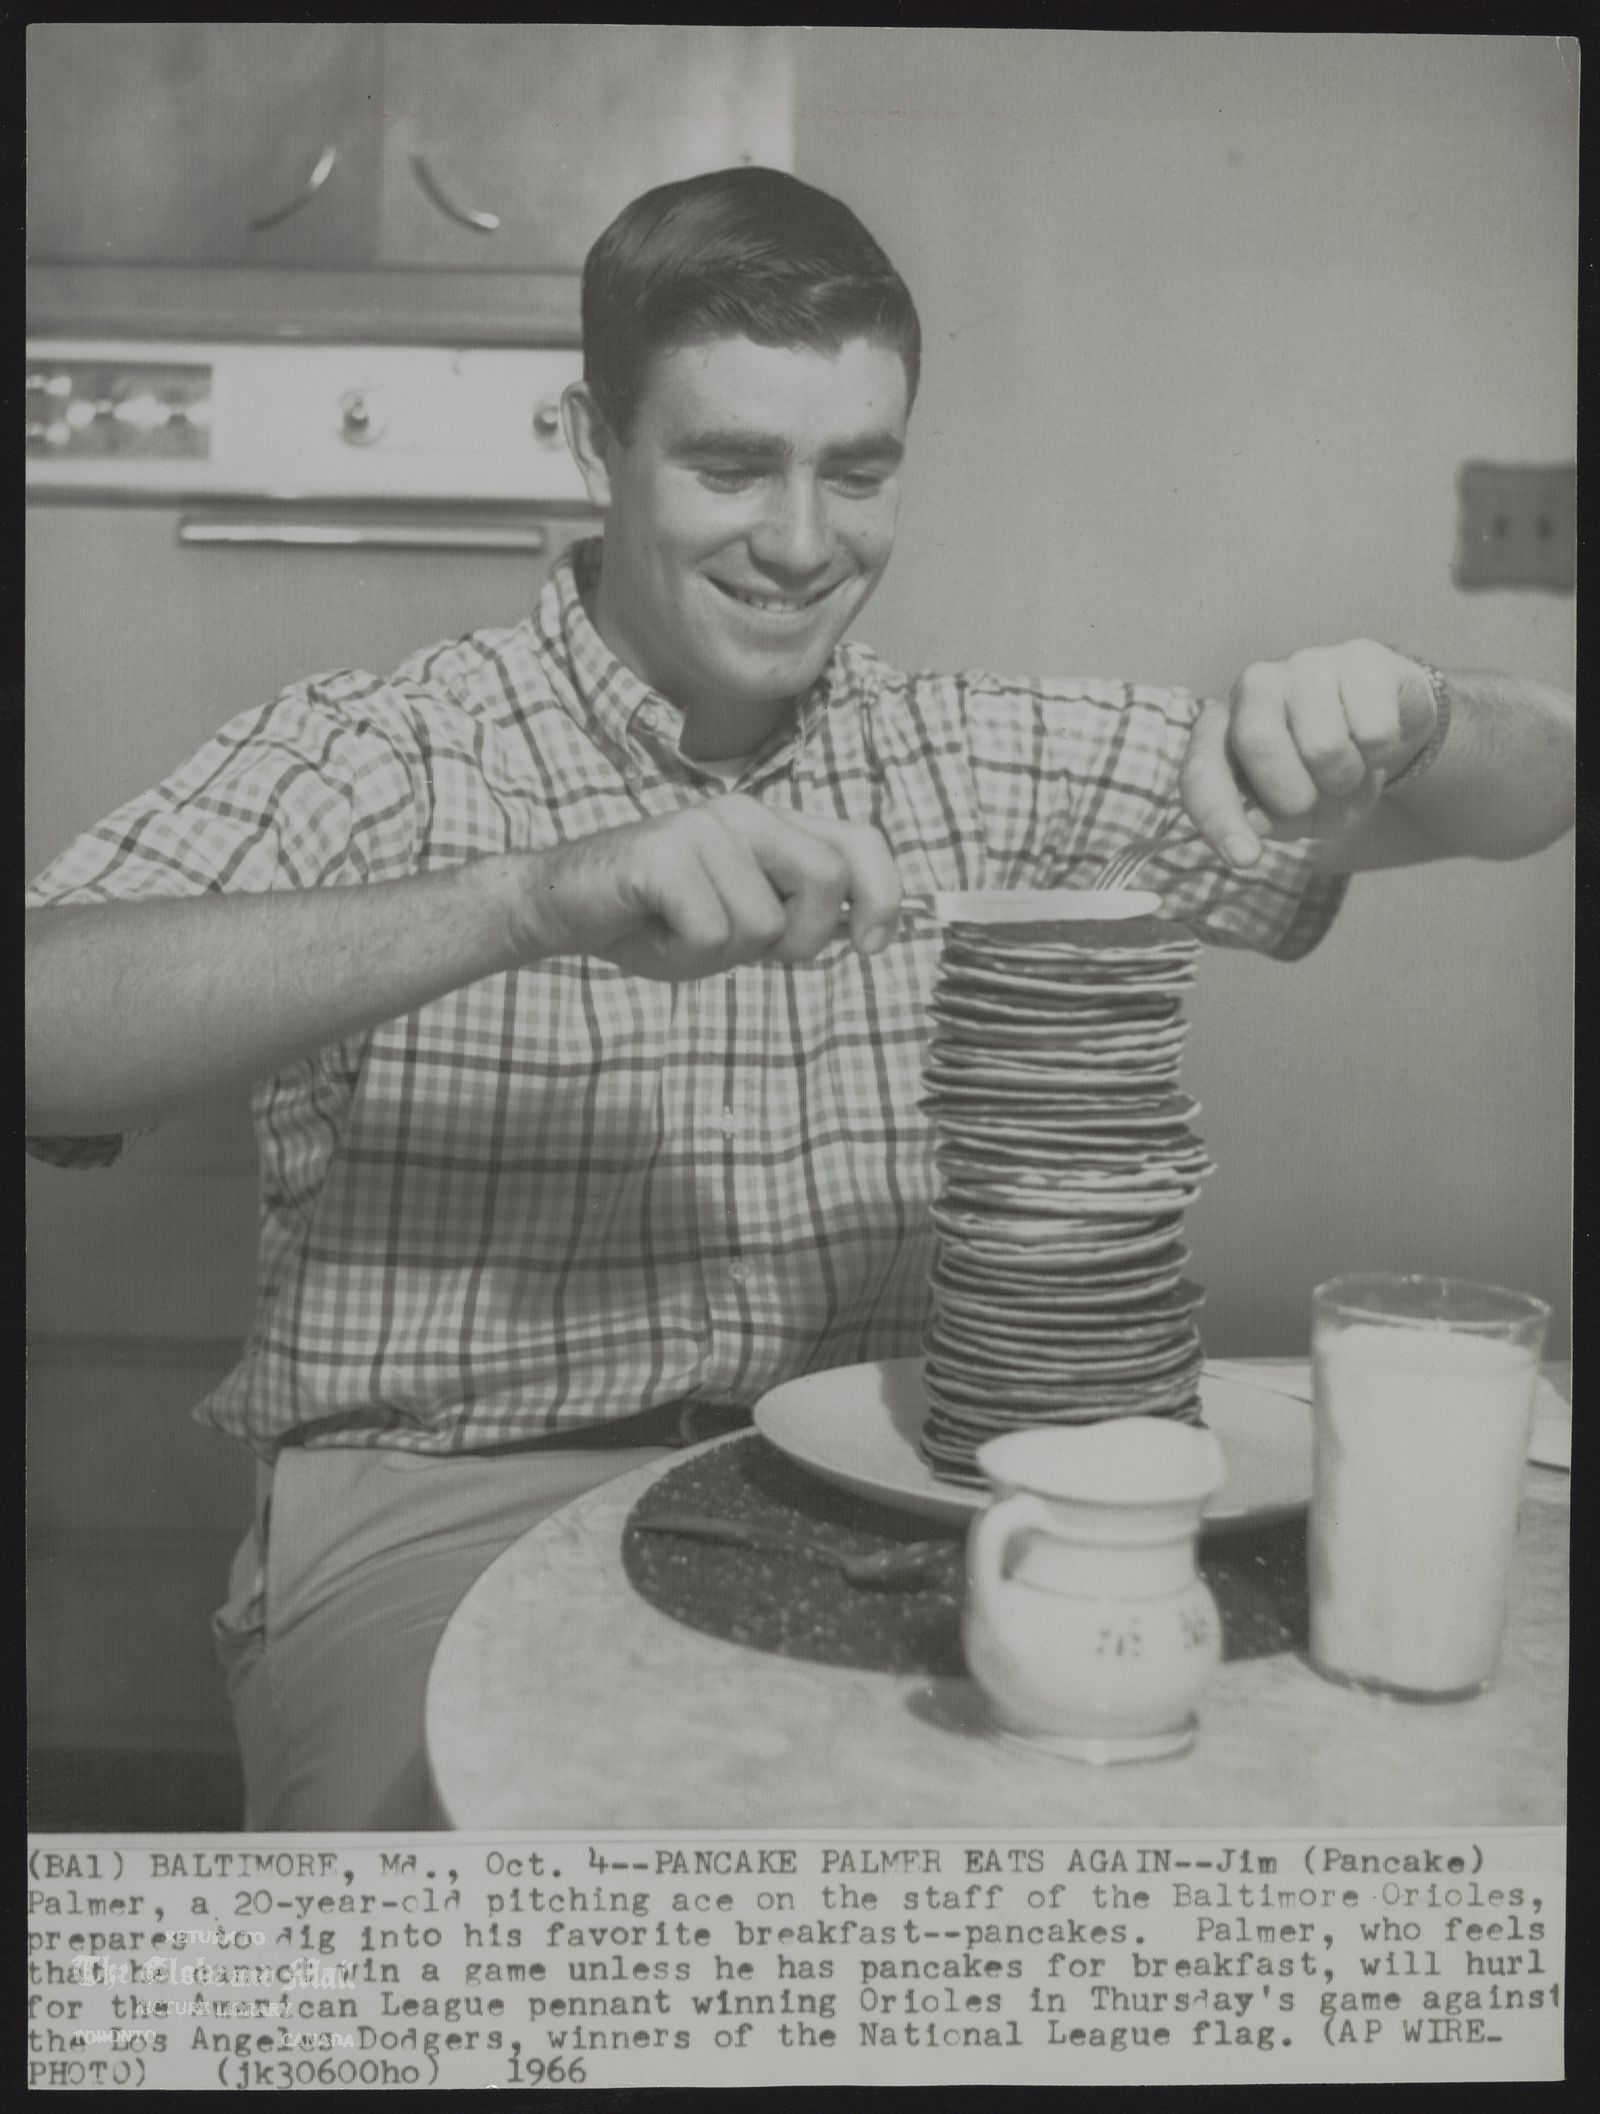 Jim (Pancake) PALMER. Baseball (BA1) BALTIMORE, Md., Oct. 4--PANCAKE PALMER EATS AGAIN-Jim (Pancake) Palmer, a 20-year-old pitching ace on the staff of the Baltimore Orioles, prepares to dig into his favorite breakfast--pancakes. Palmer, who feels that he cannot win a game unless he has pancakes for breakfast, will hurl for the American League pennant winning Orioles in Thursday's game against the Los Angeles Dodgers, winners of the National League flag. (AP WIREPHOTO) 1966